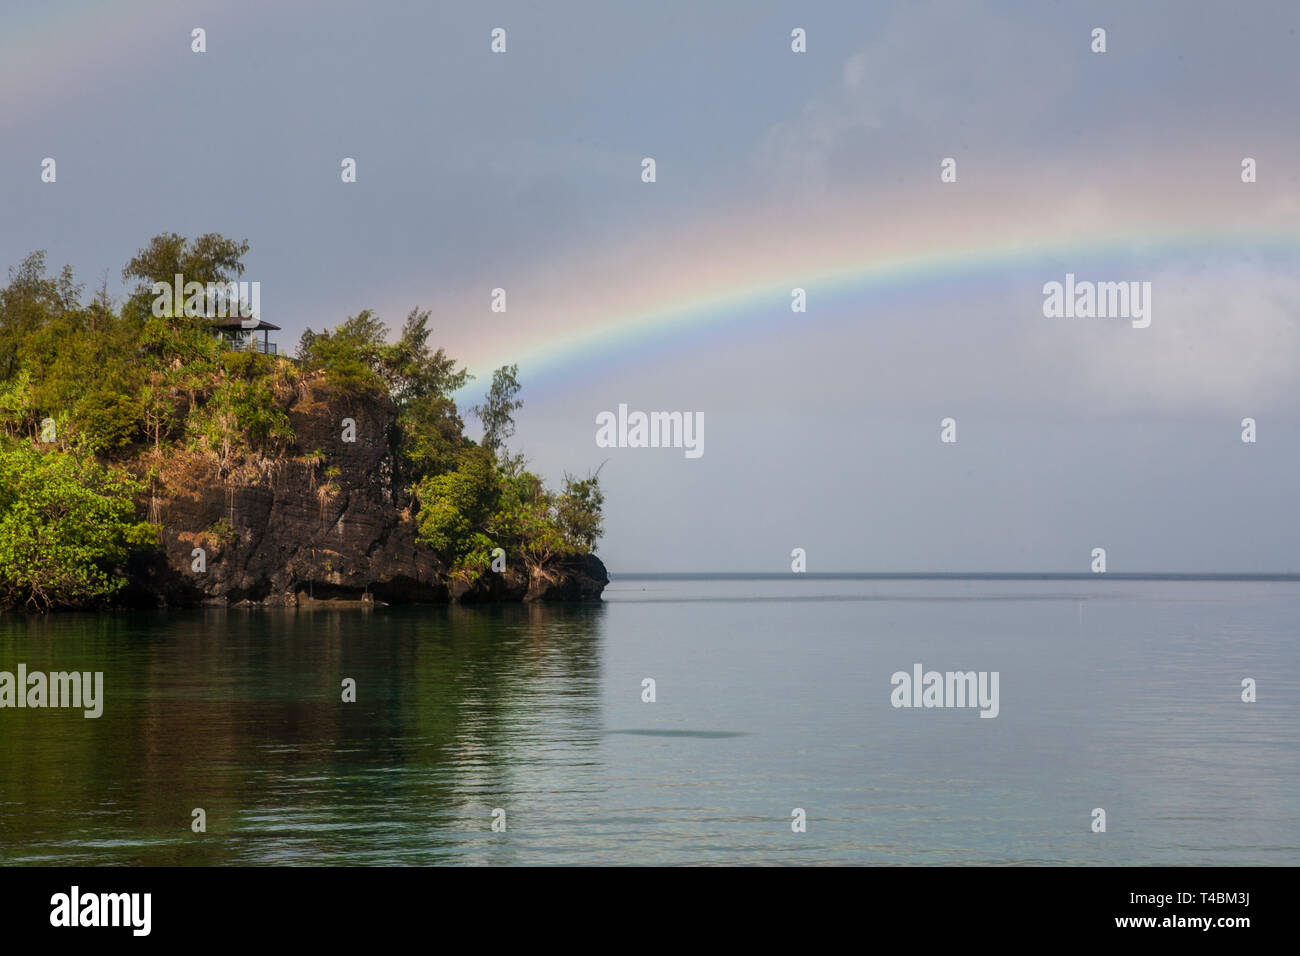 A beautiful rainbow appears over the western lagoon in the Republic of Palau. This Micronesian island-nation is known for its scuba diving. - Stock Image